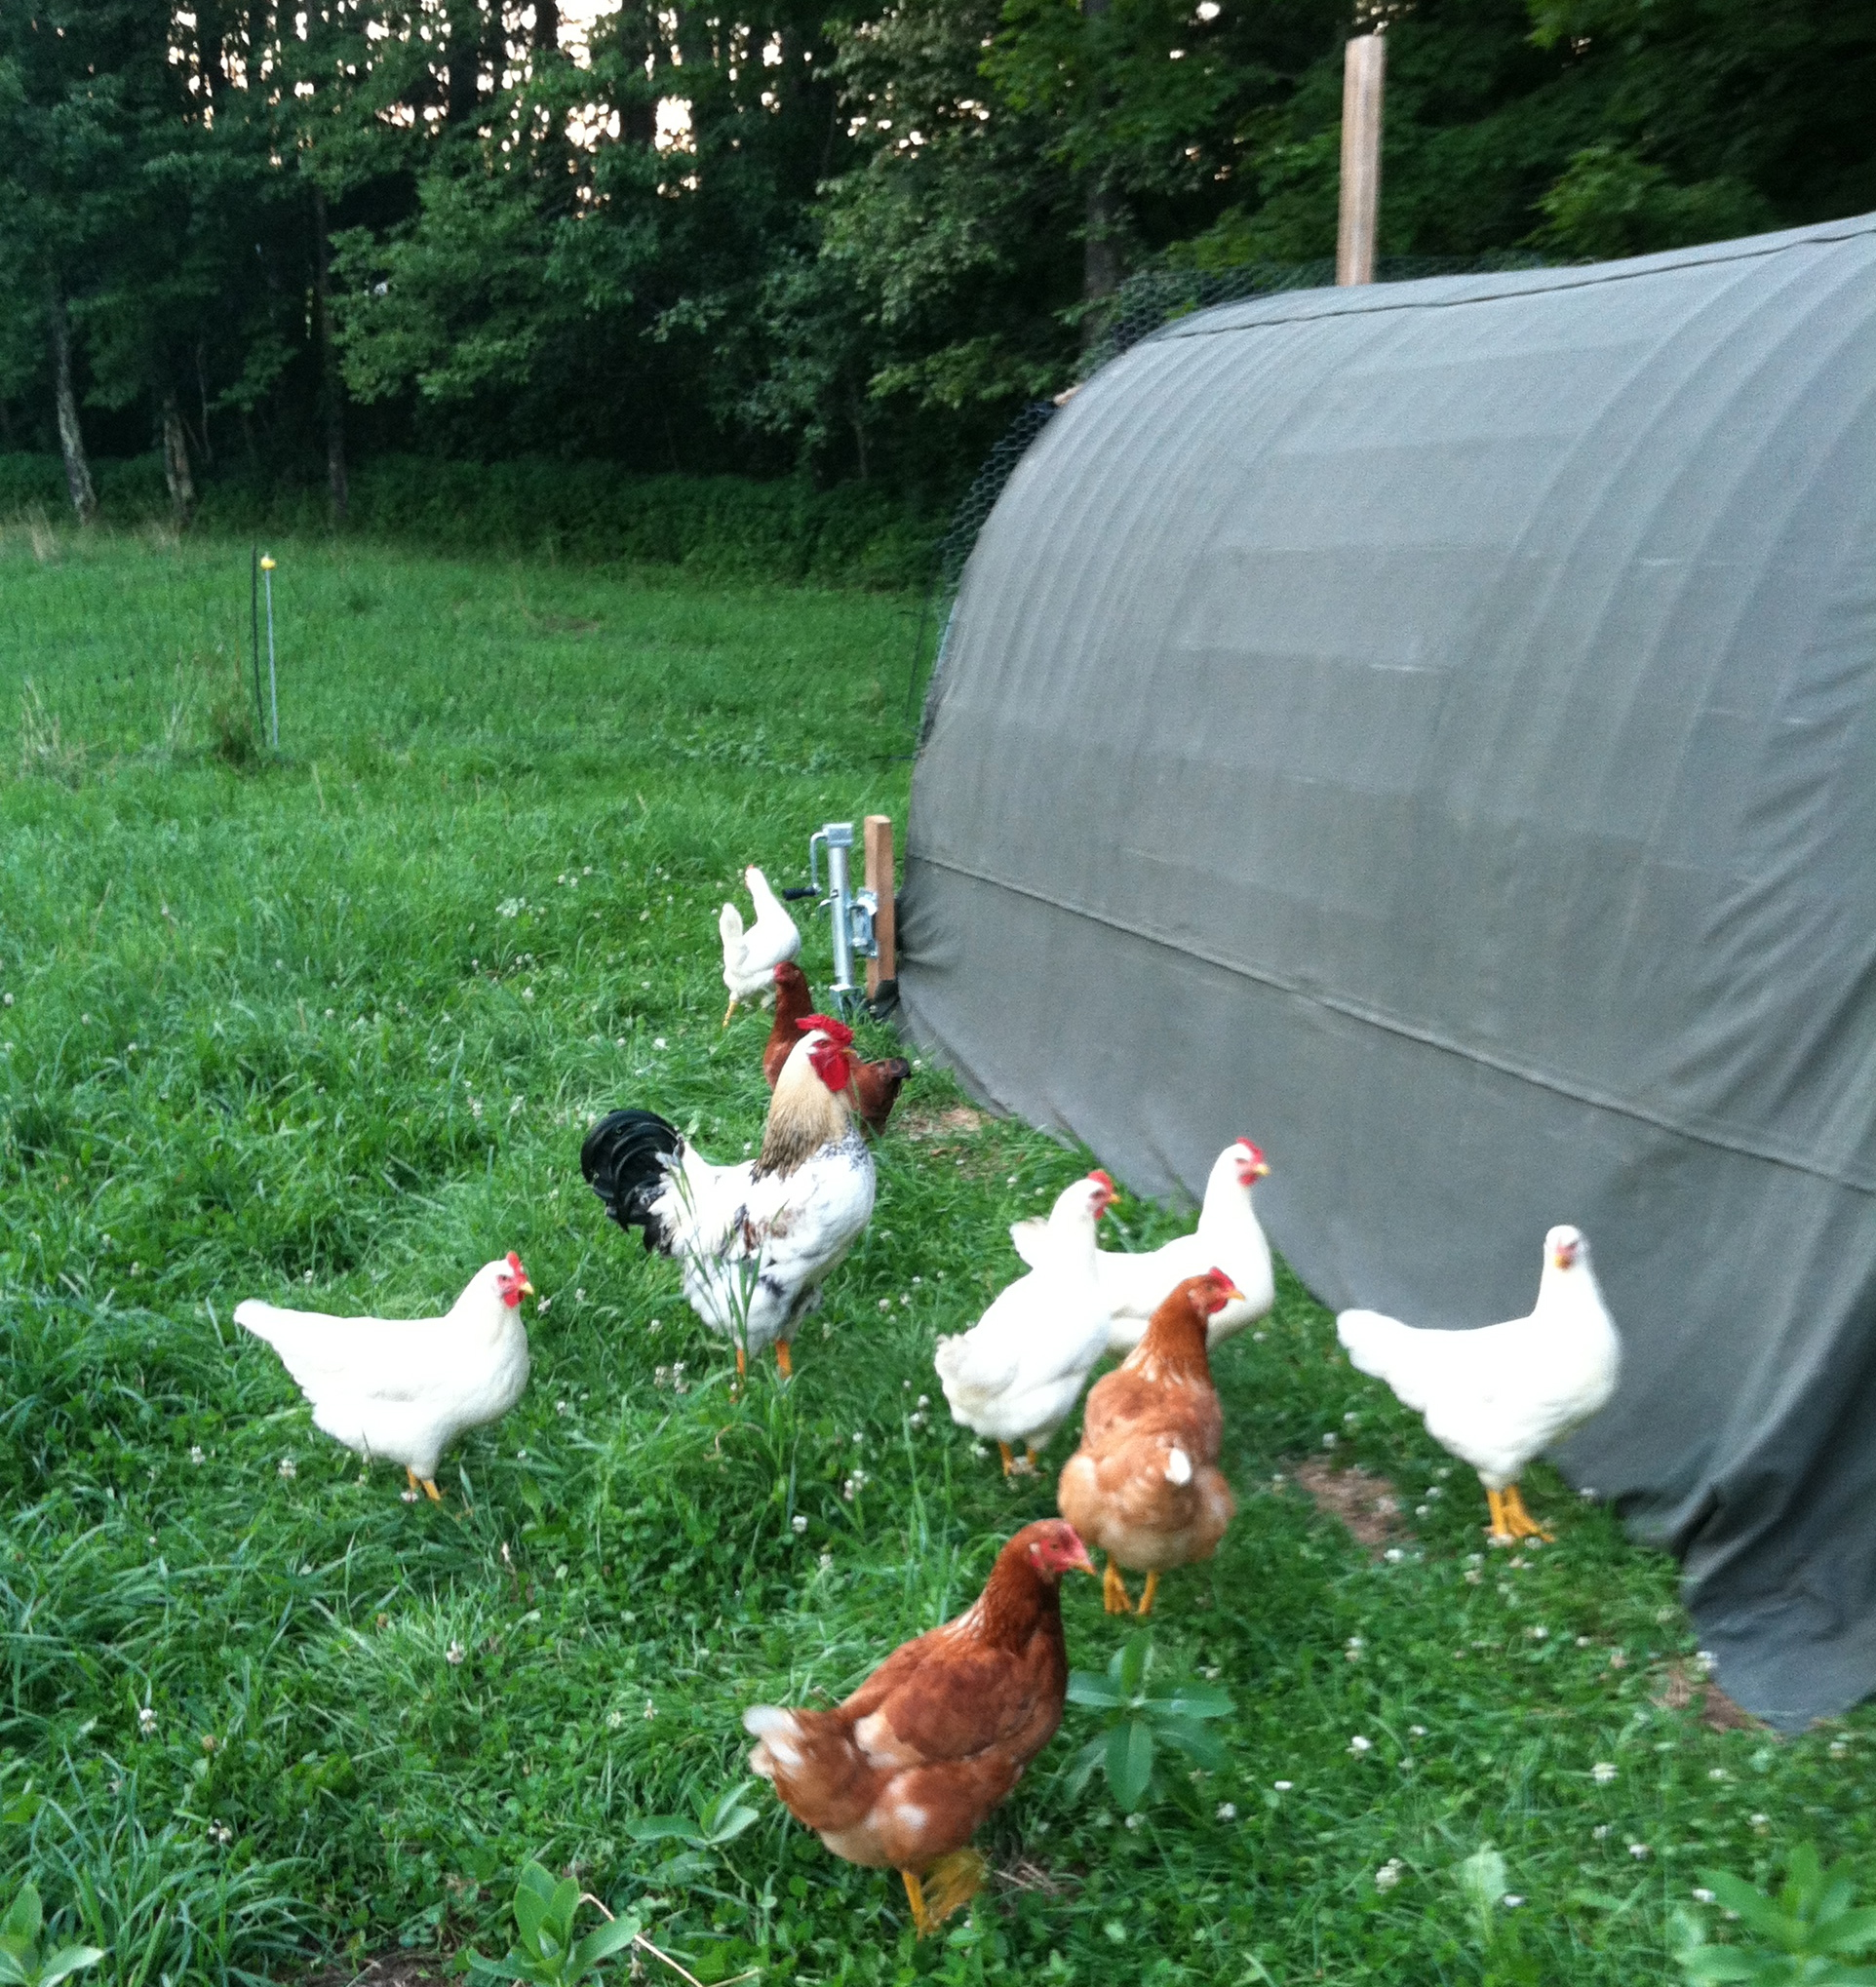 chickens contemplating how to get out of their fencing, no doubt.